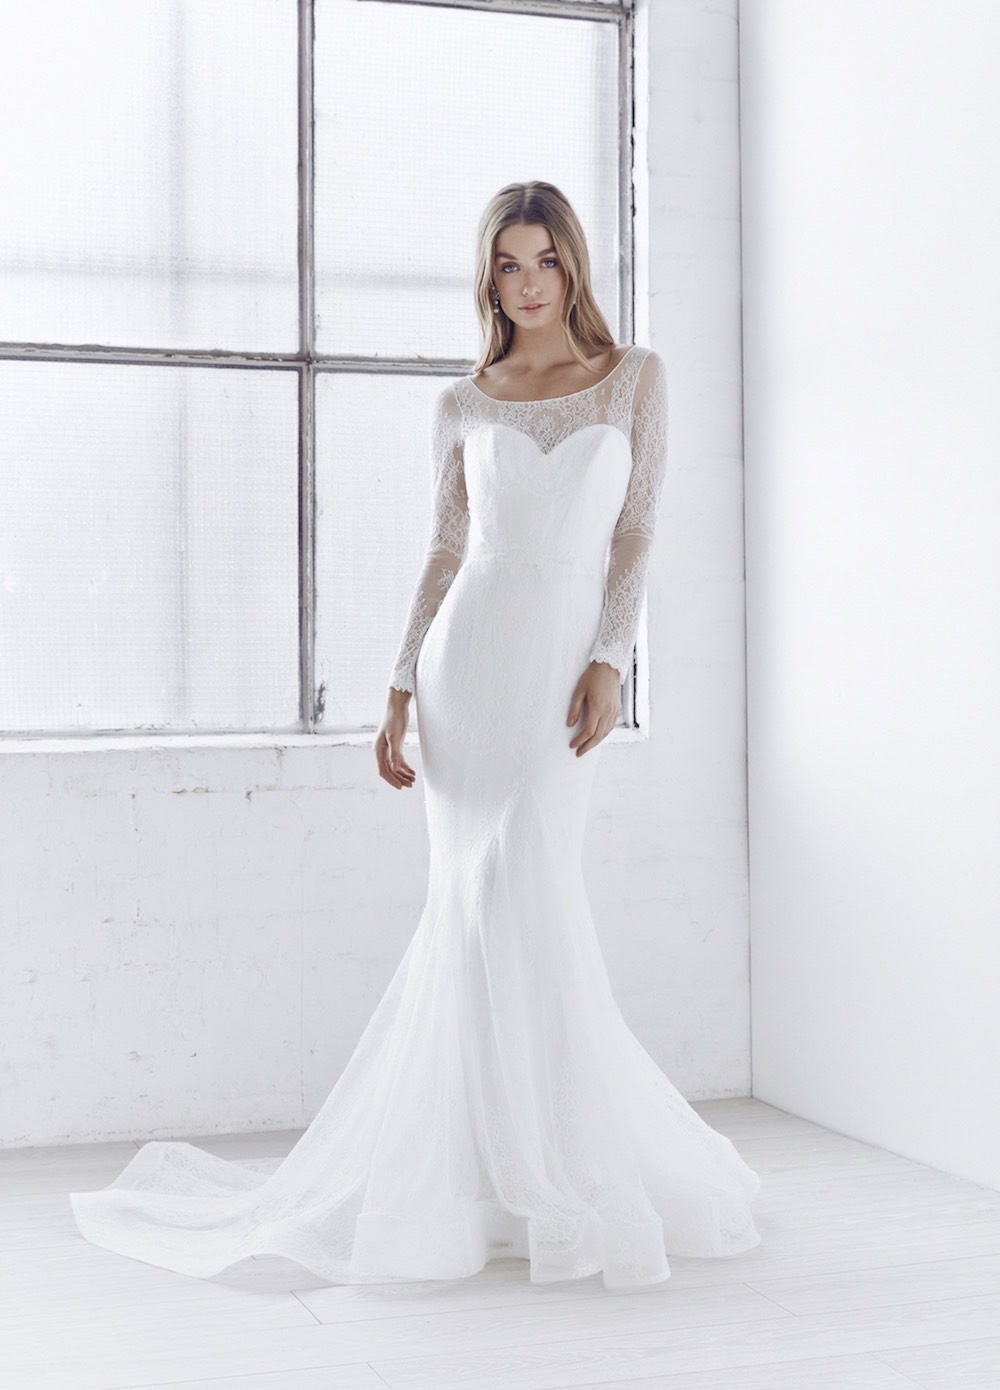 With an elegant illusion neckline, long sleeves, and fitted trumpet skirt in delicate ivory lace, the soft, ethereal elegance of the Milla Dress is both sexy and sweet